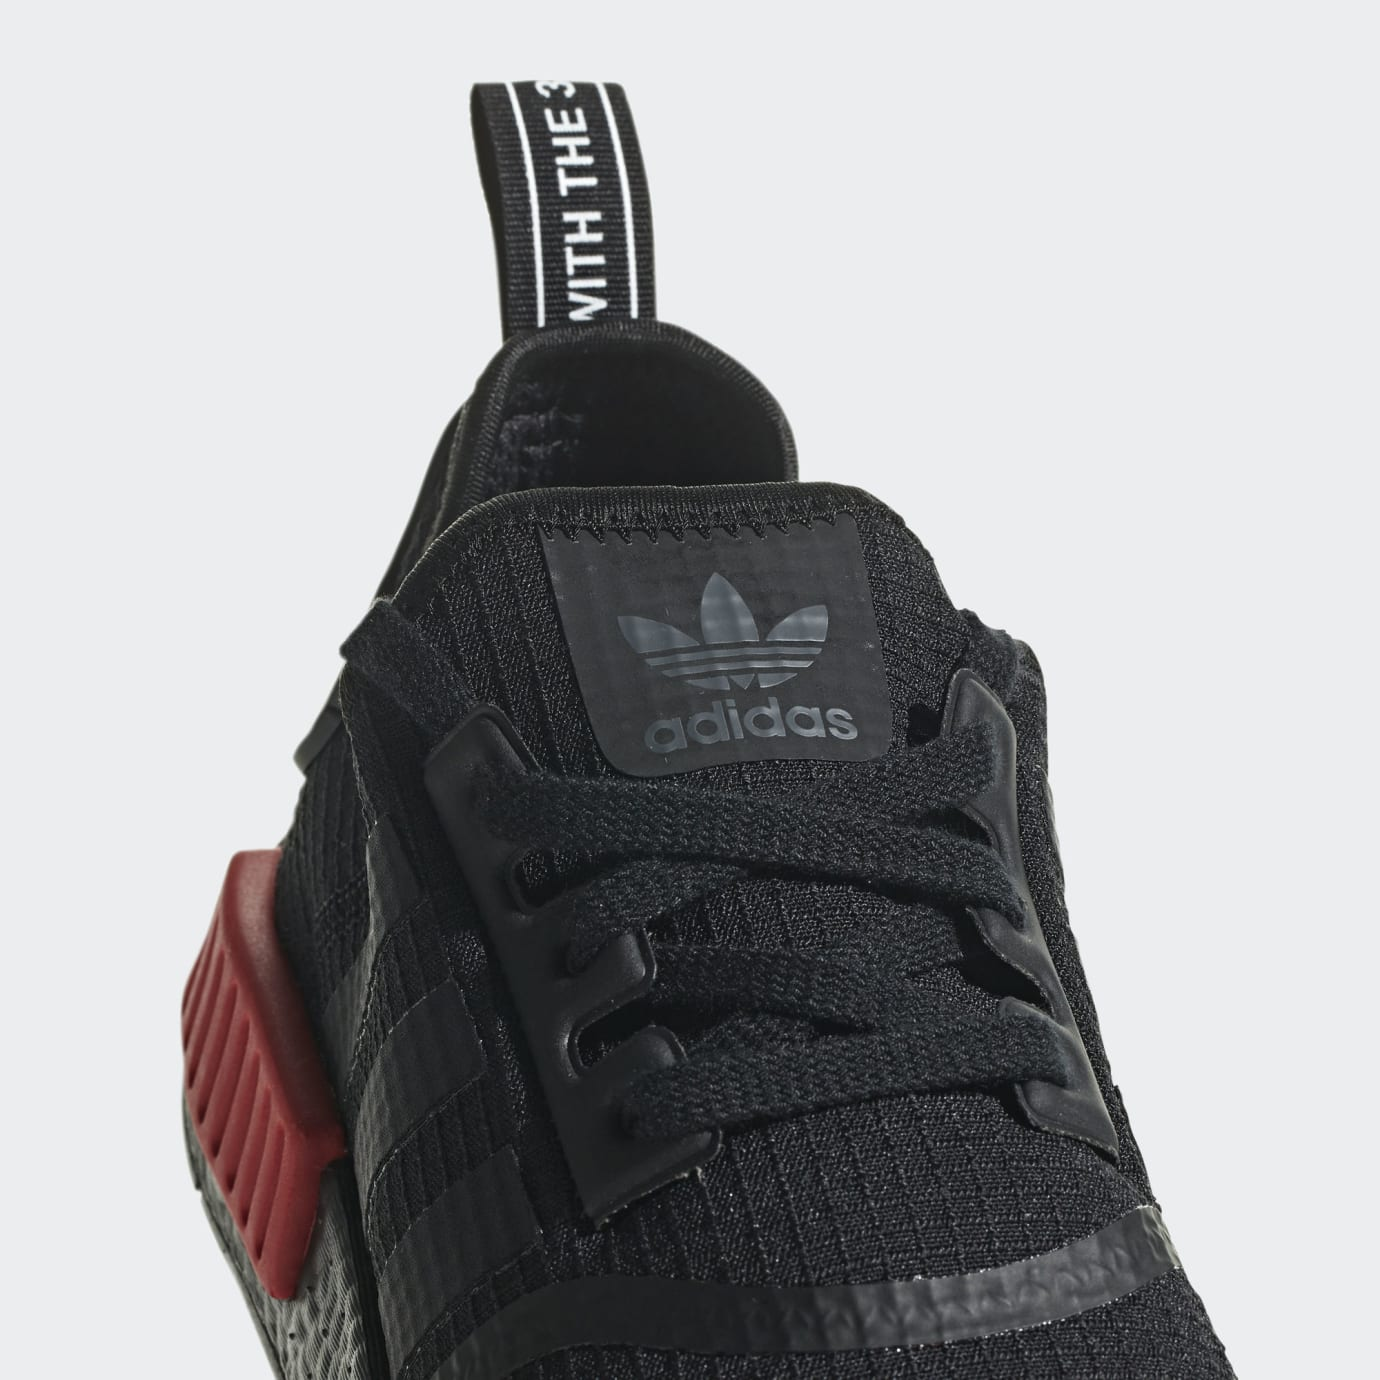 on sale 19673 d3ae3 Adidas NMD_R1 'Bred' Release Date Sept. 6, 2018 B37618 ...